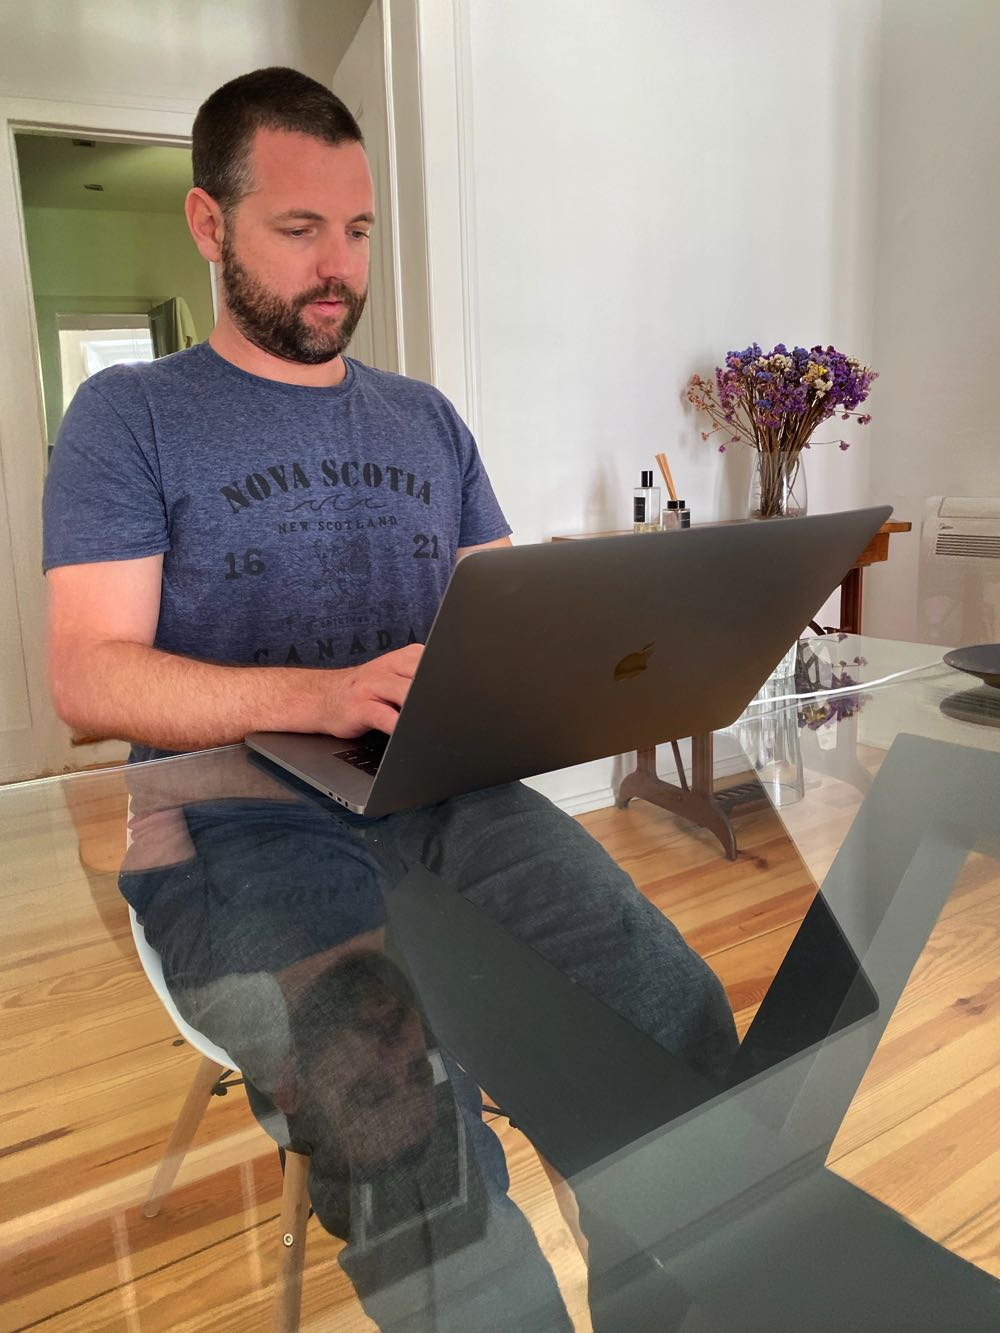 Me working on blogging on my laptop on website